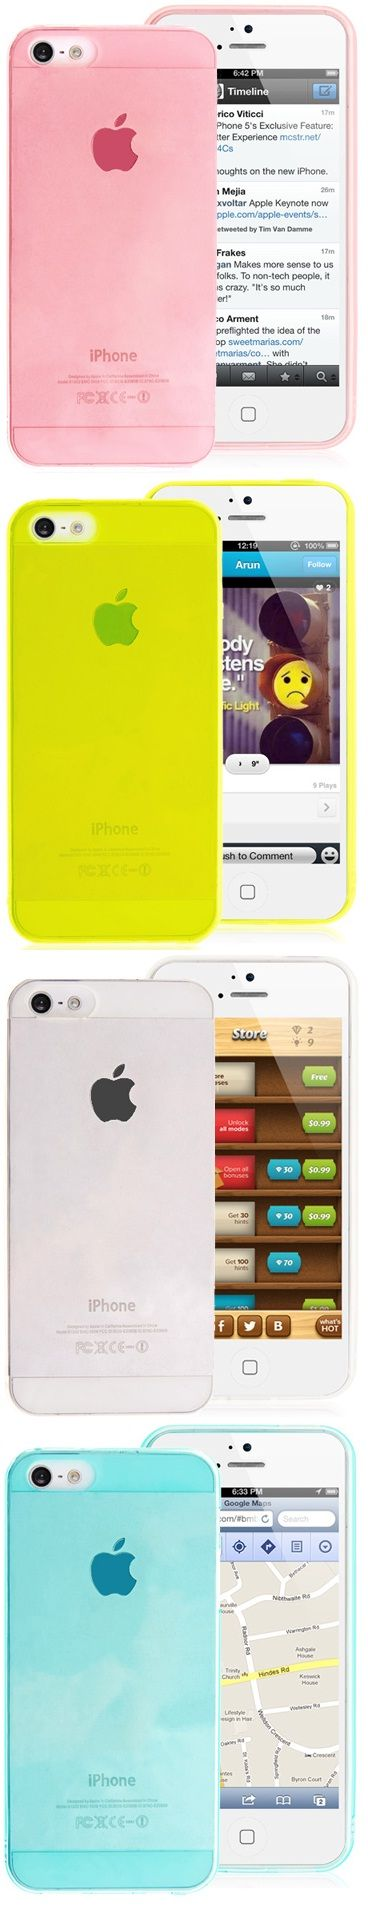 Colorful Summer iPhone 5 Case #summer #case #apple #iphone #colors #iphone5case #cellz